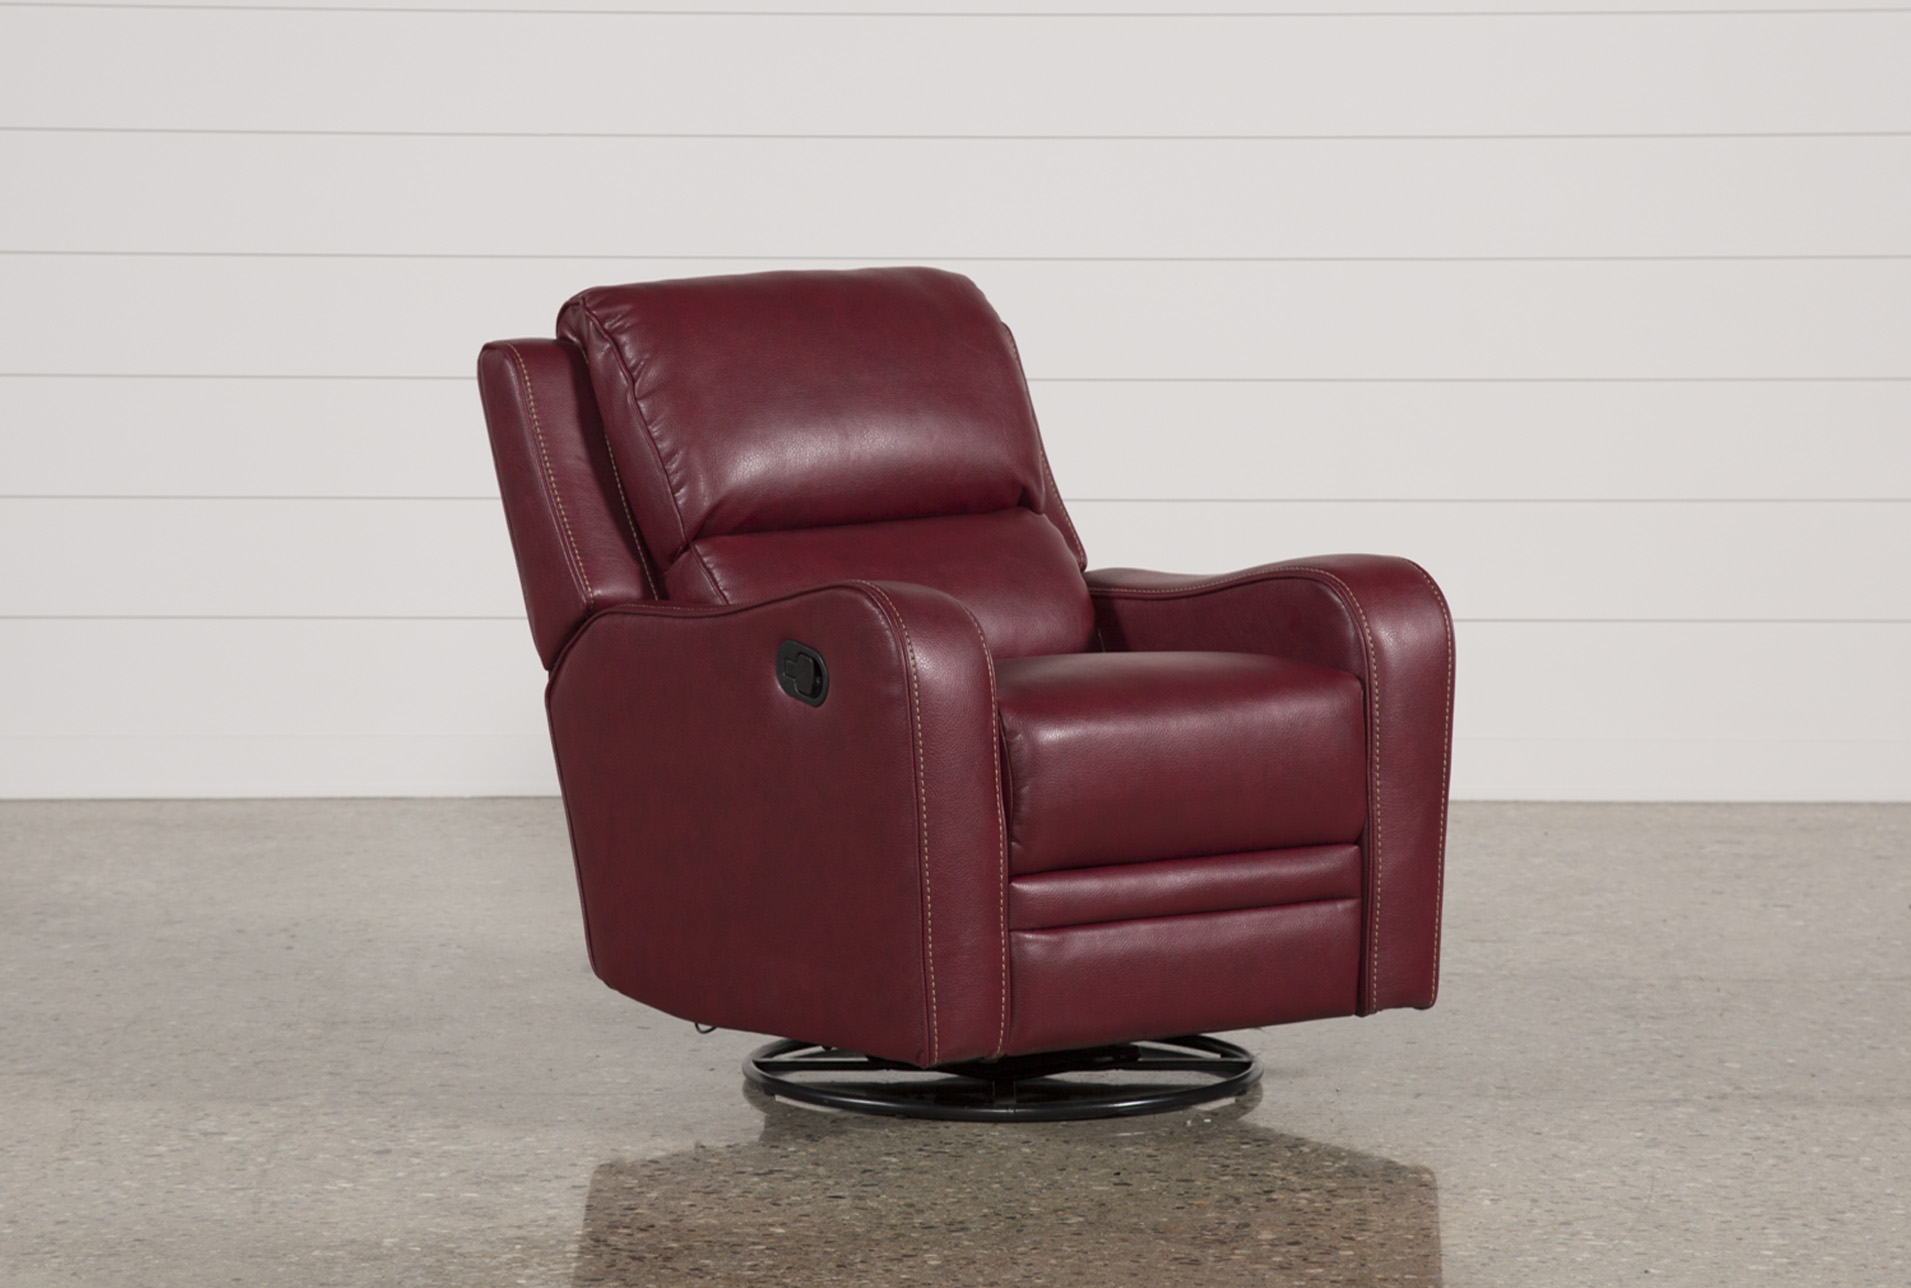 Genial Scorpio Red Swivel Glider Recliner (Qty: 1) Has Been Successfully Added To  Your Cart.